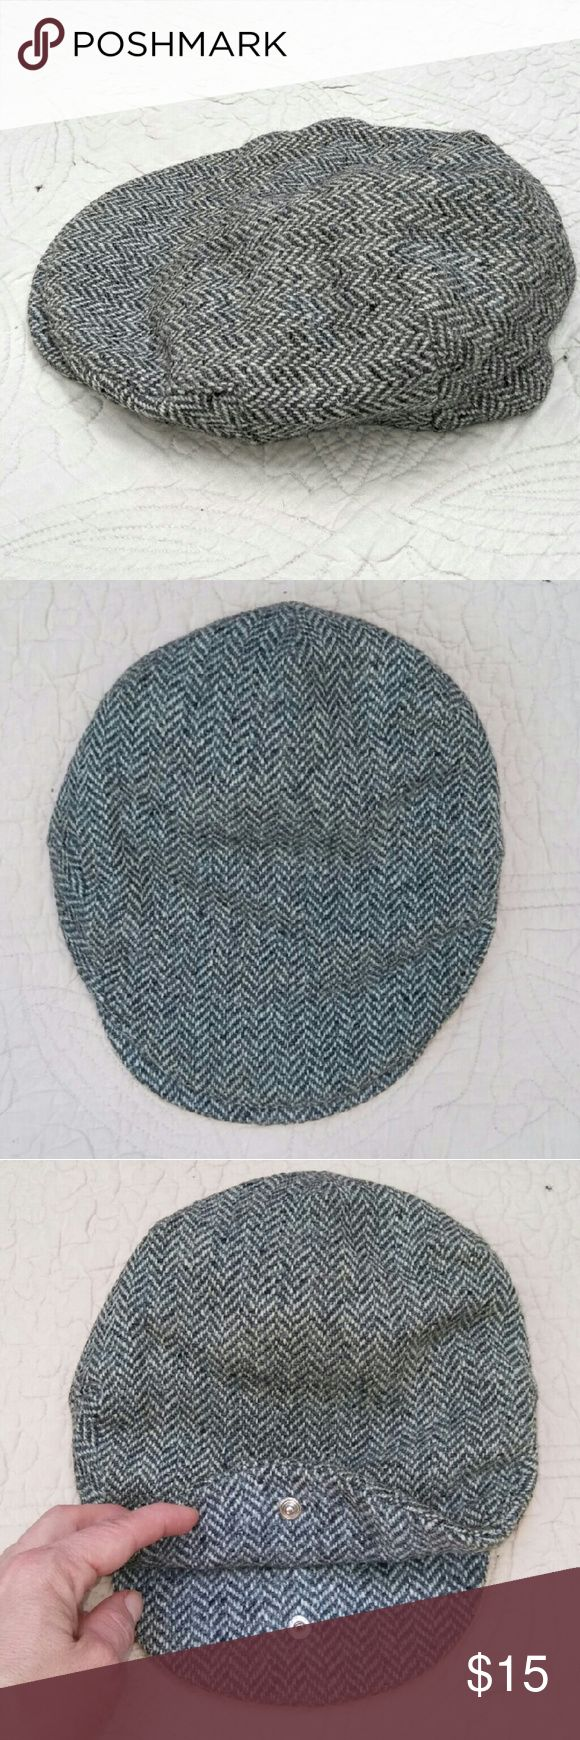 IRISH WOOL Flat Cap MADE IN TOWN OF DONEGAL IRELAND. B&W Men's Wool Flat Cap by Hanna Hats for LL Bean. In excellent used condition with some wear to the back panel. Men's Large. From a smoke free home. Make an offer! Vintage Accessories Hats